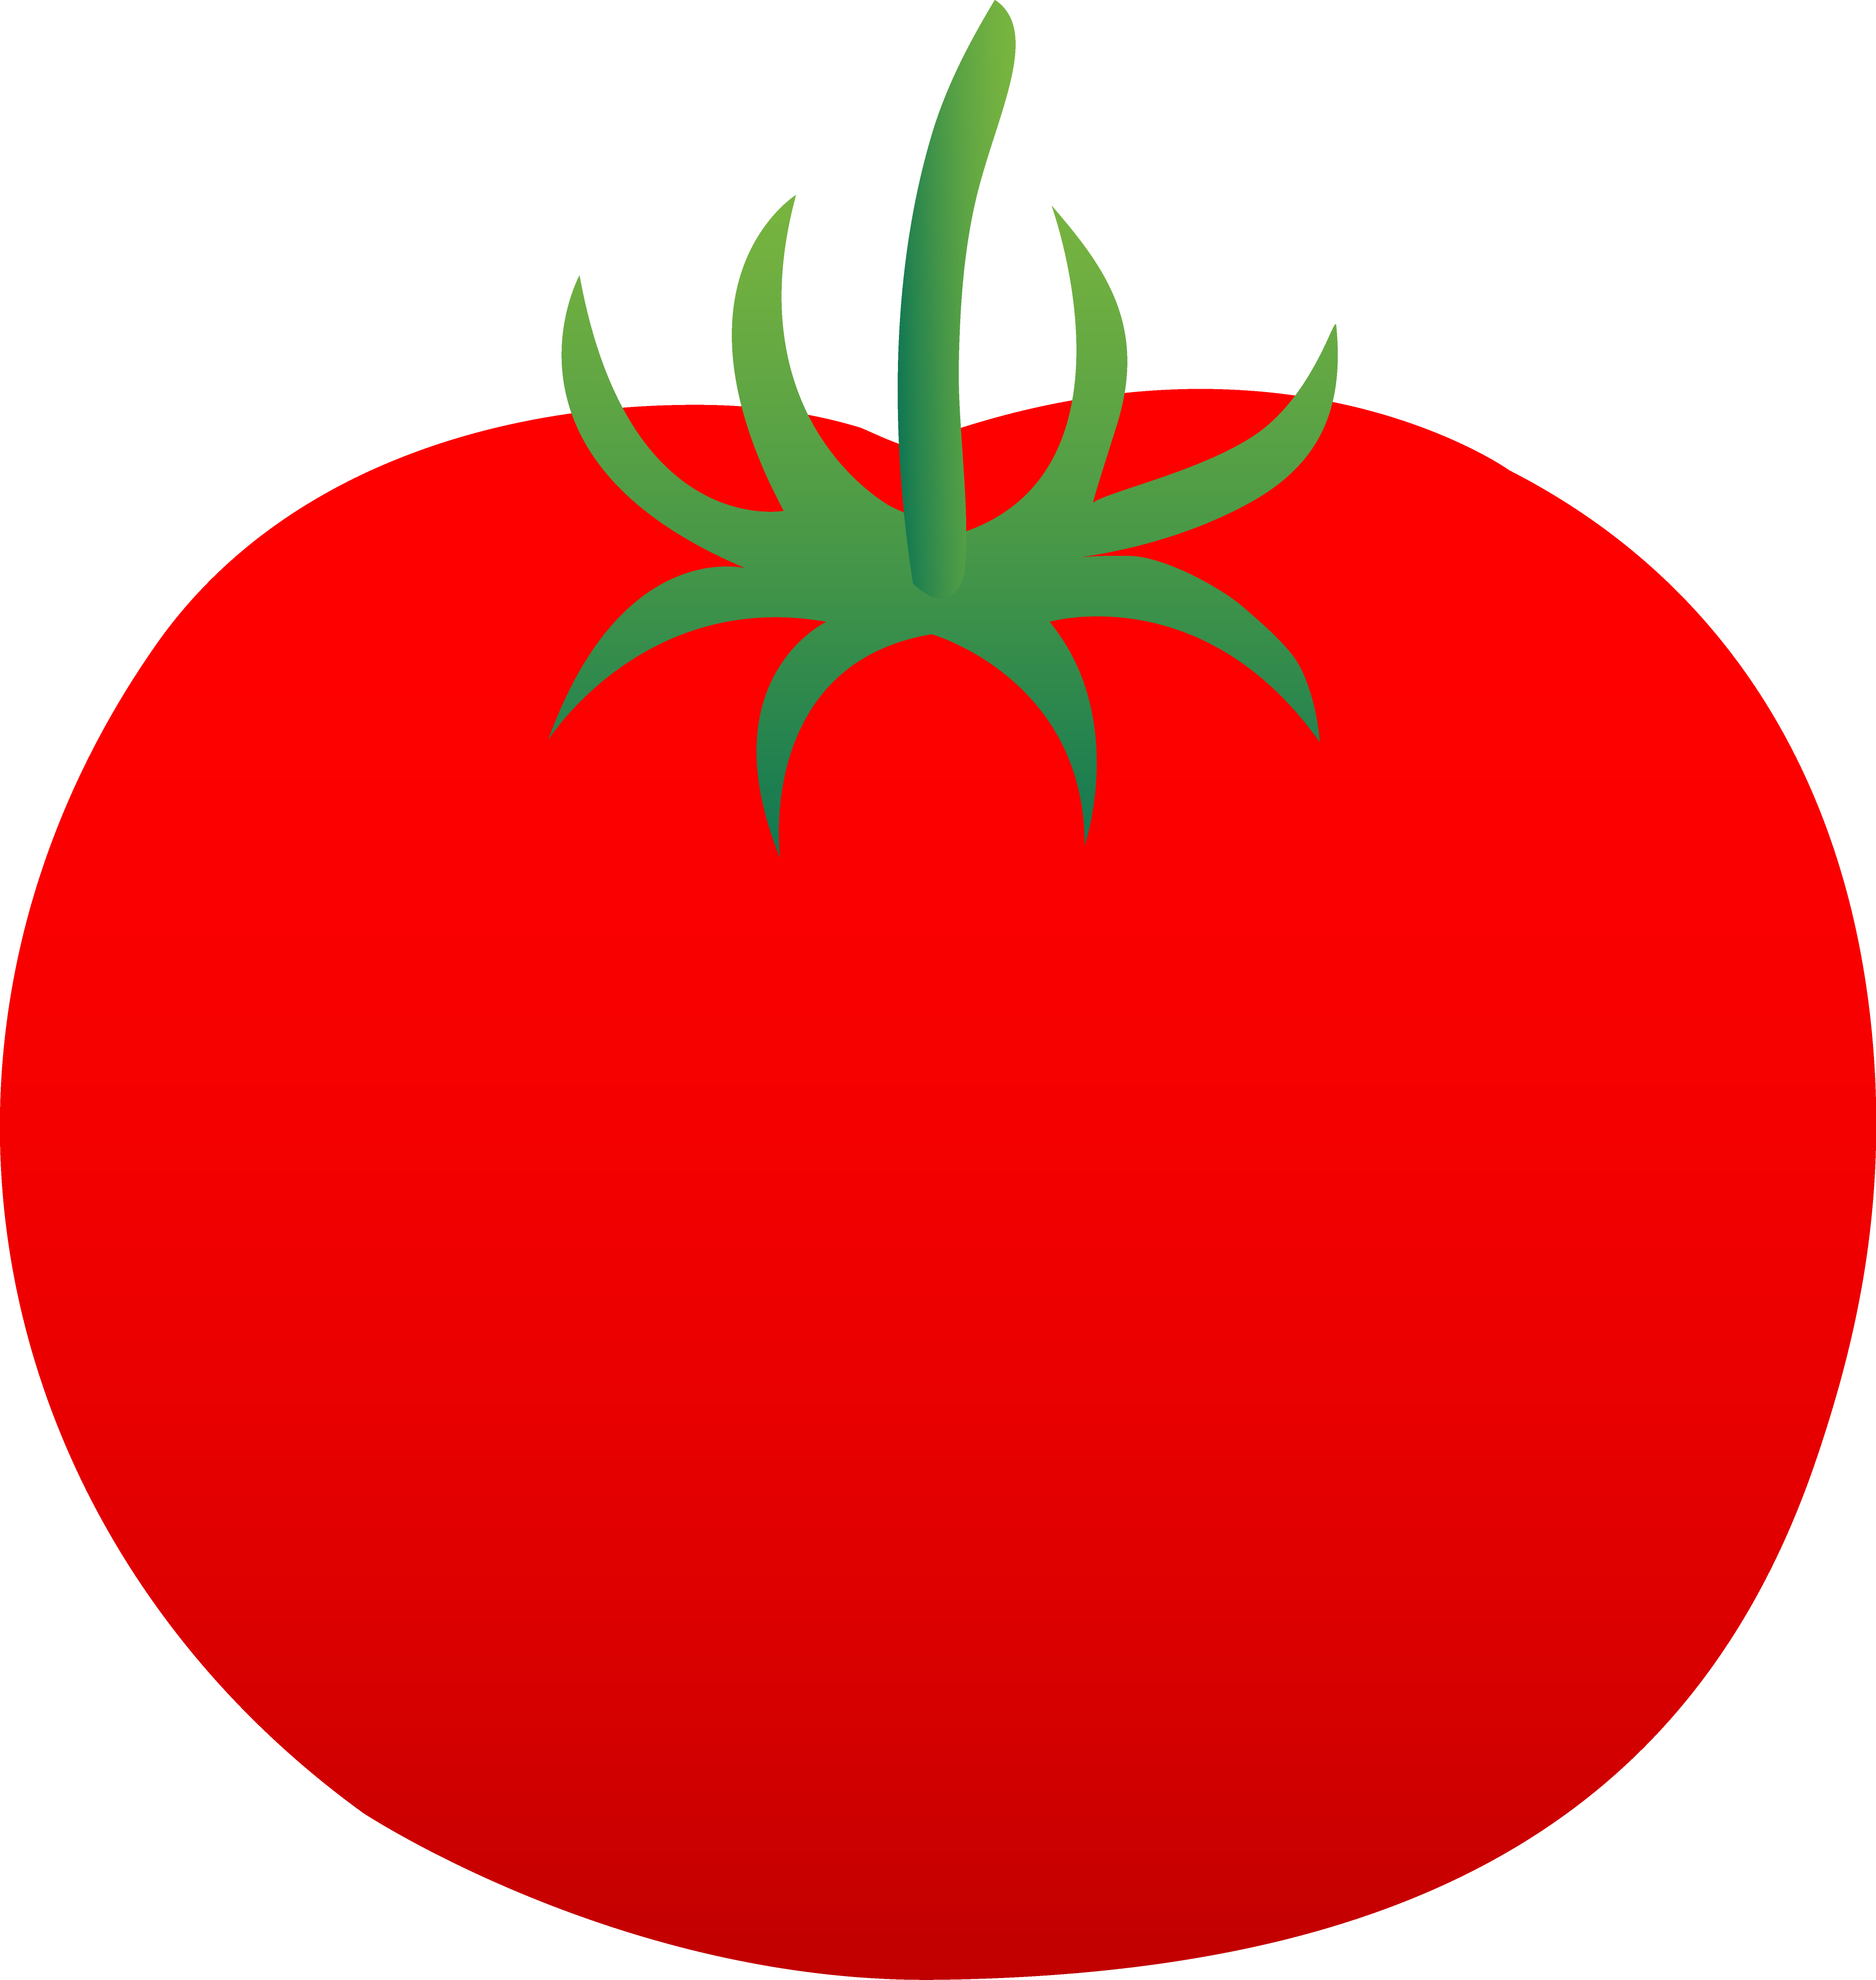 Red clipart tomato #5